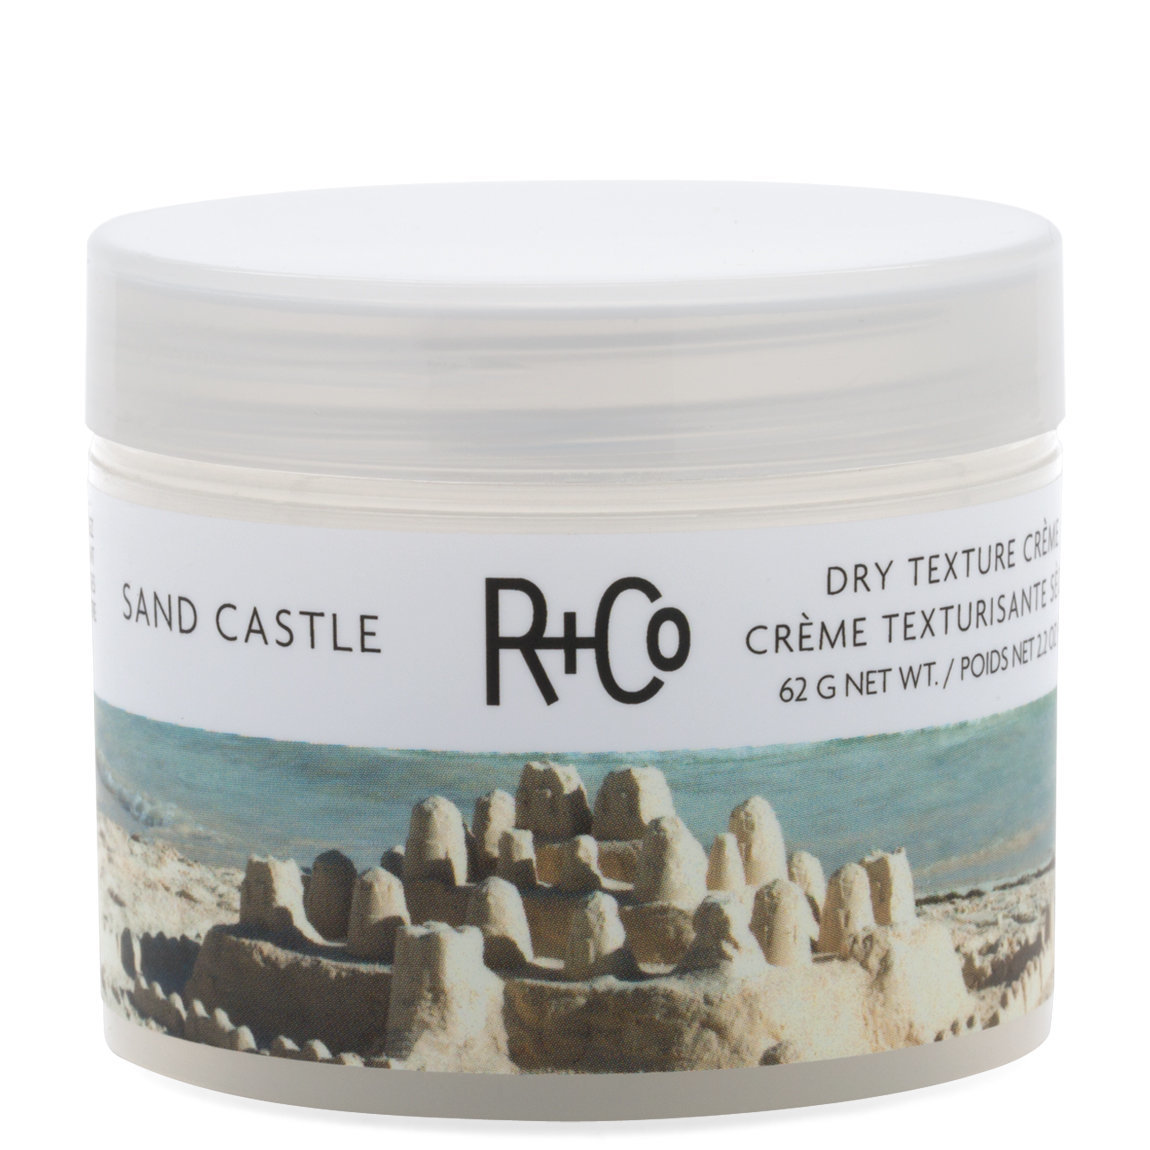 R+Co Sand Castle Dry Texture Cream product swatch.